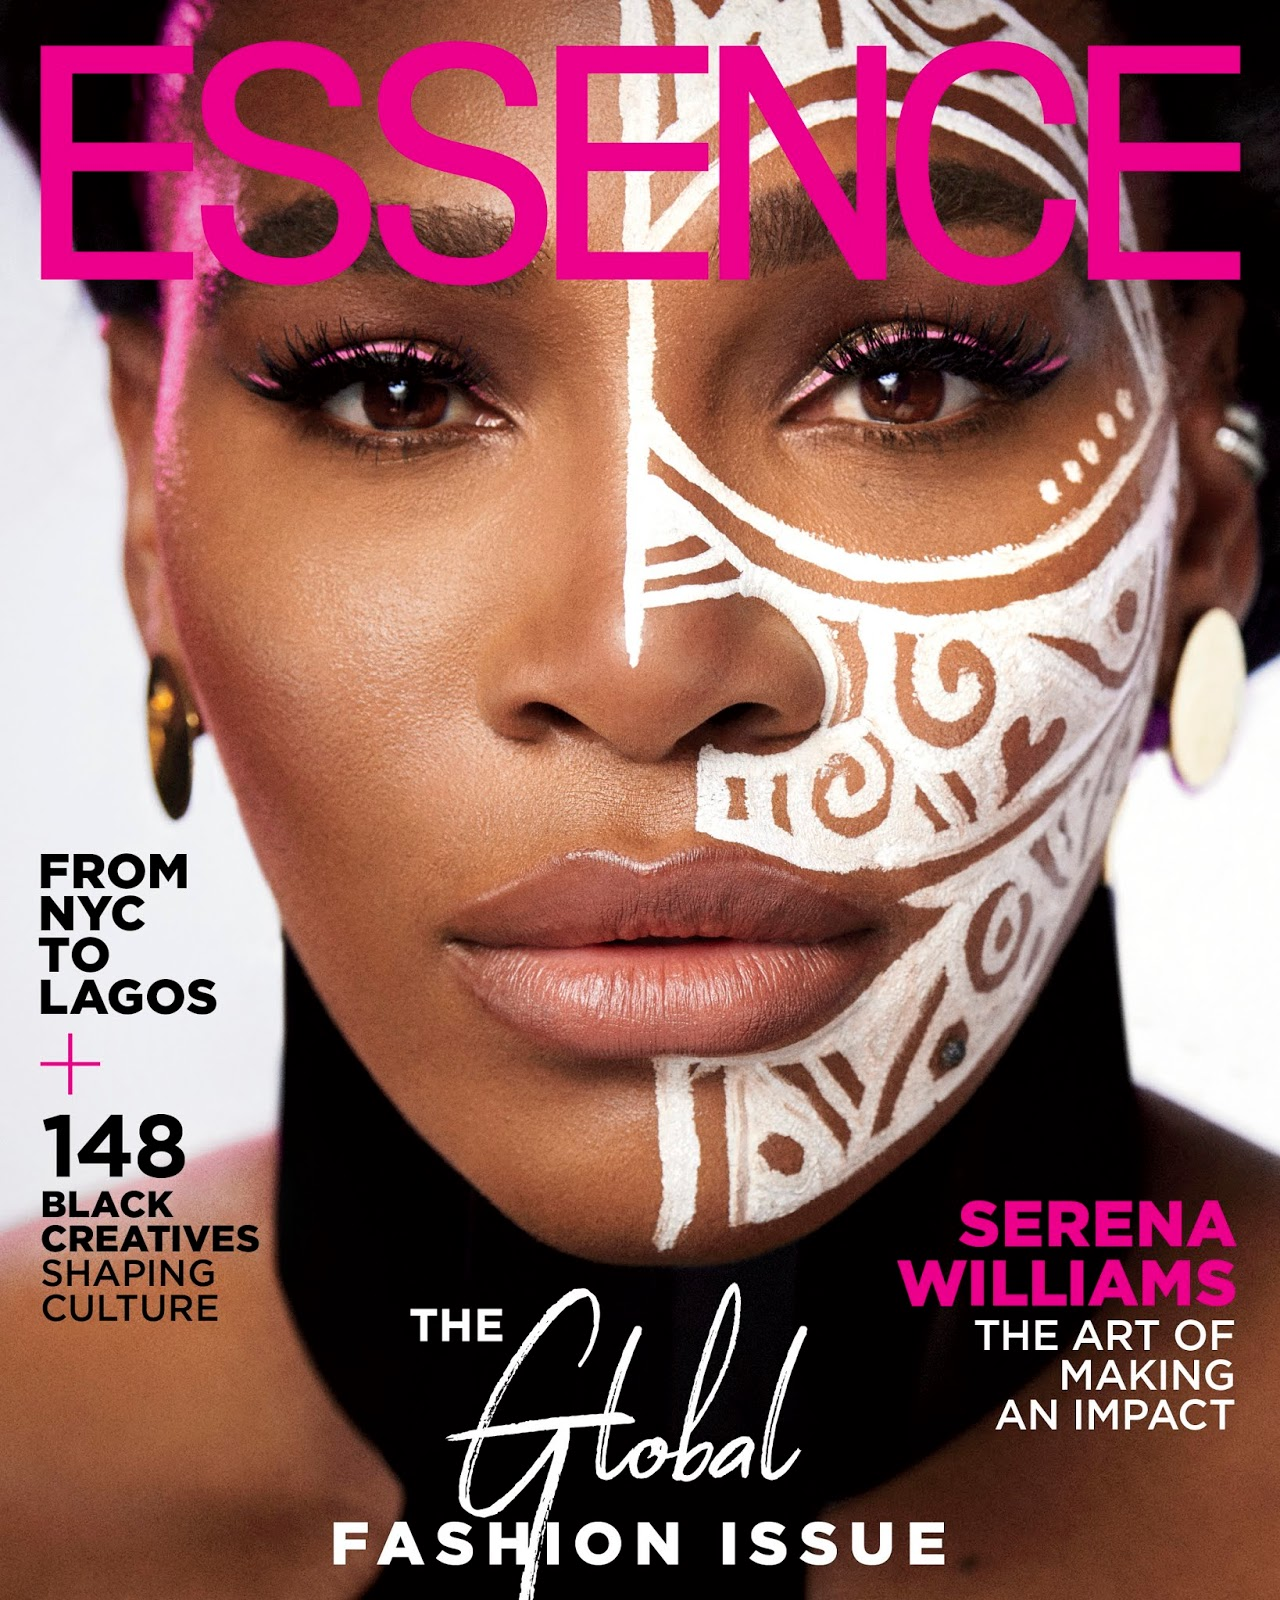 Serena Williams Covers The Global Fashion Issue of Essence Magazine